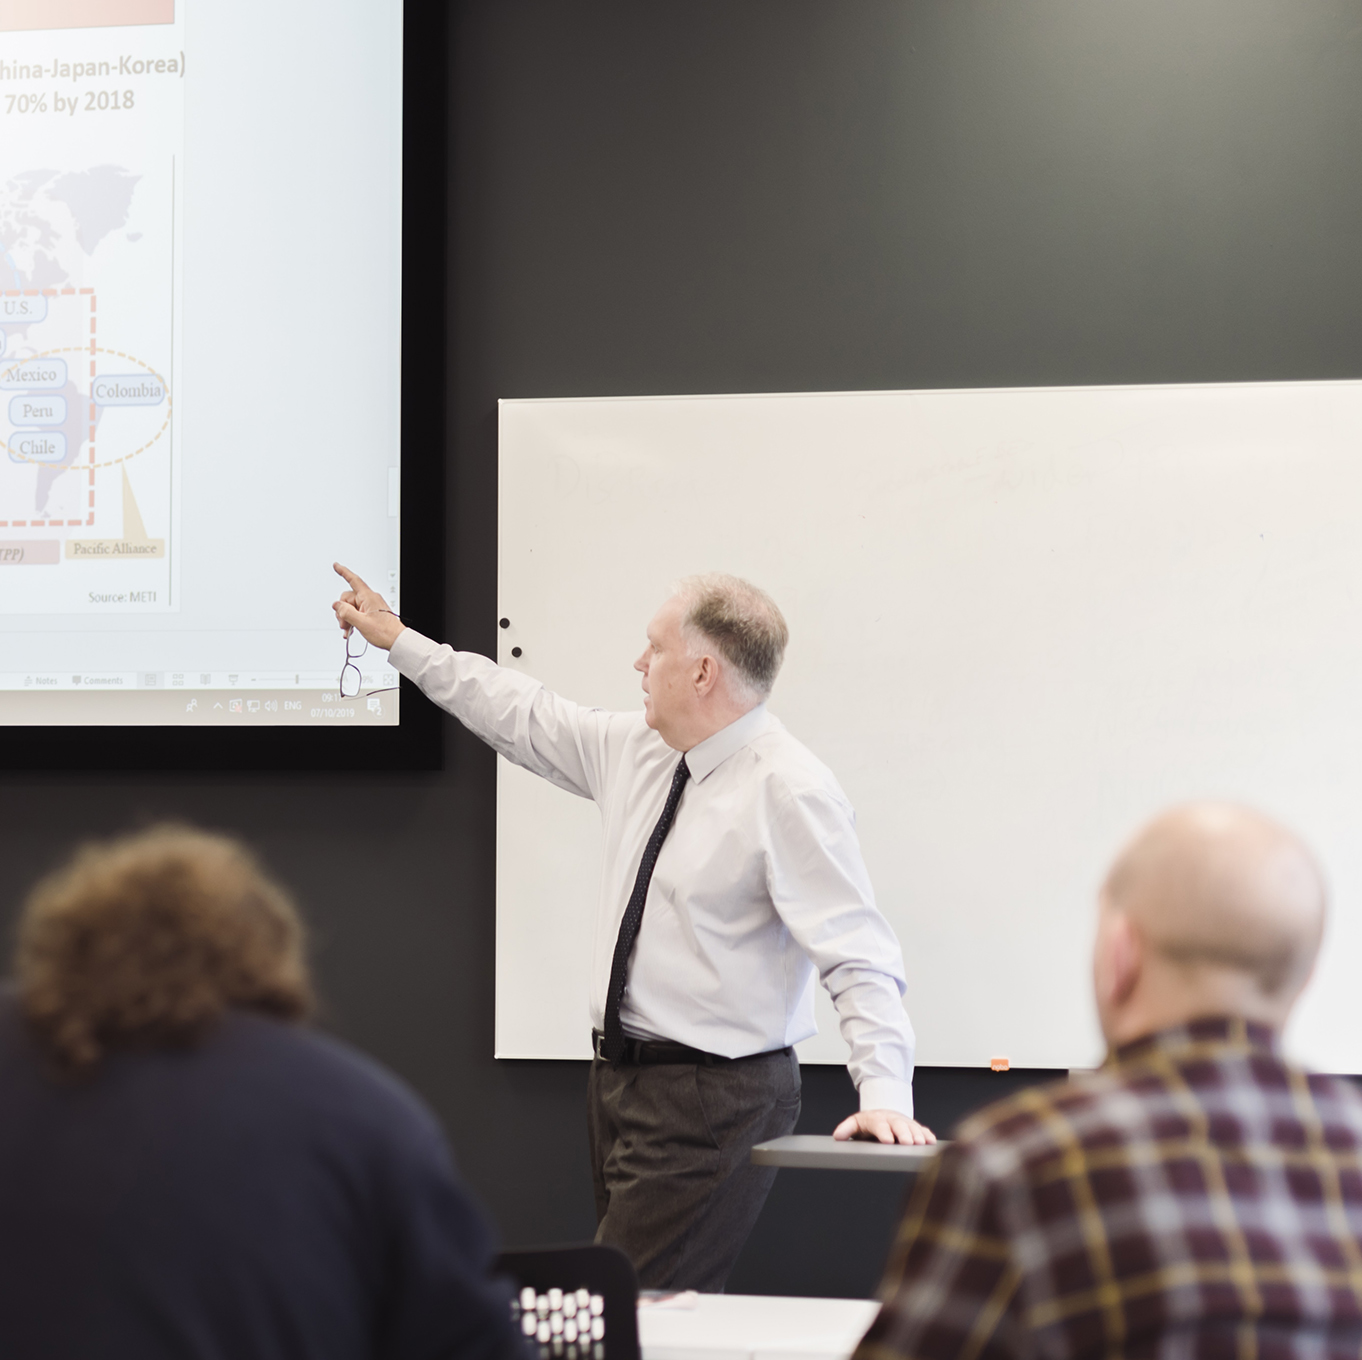 Students in a lecture - the lecturer is pointing at the projection of the presentation slides, while students take notes